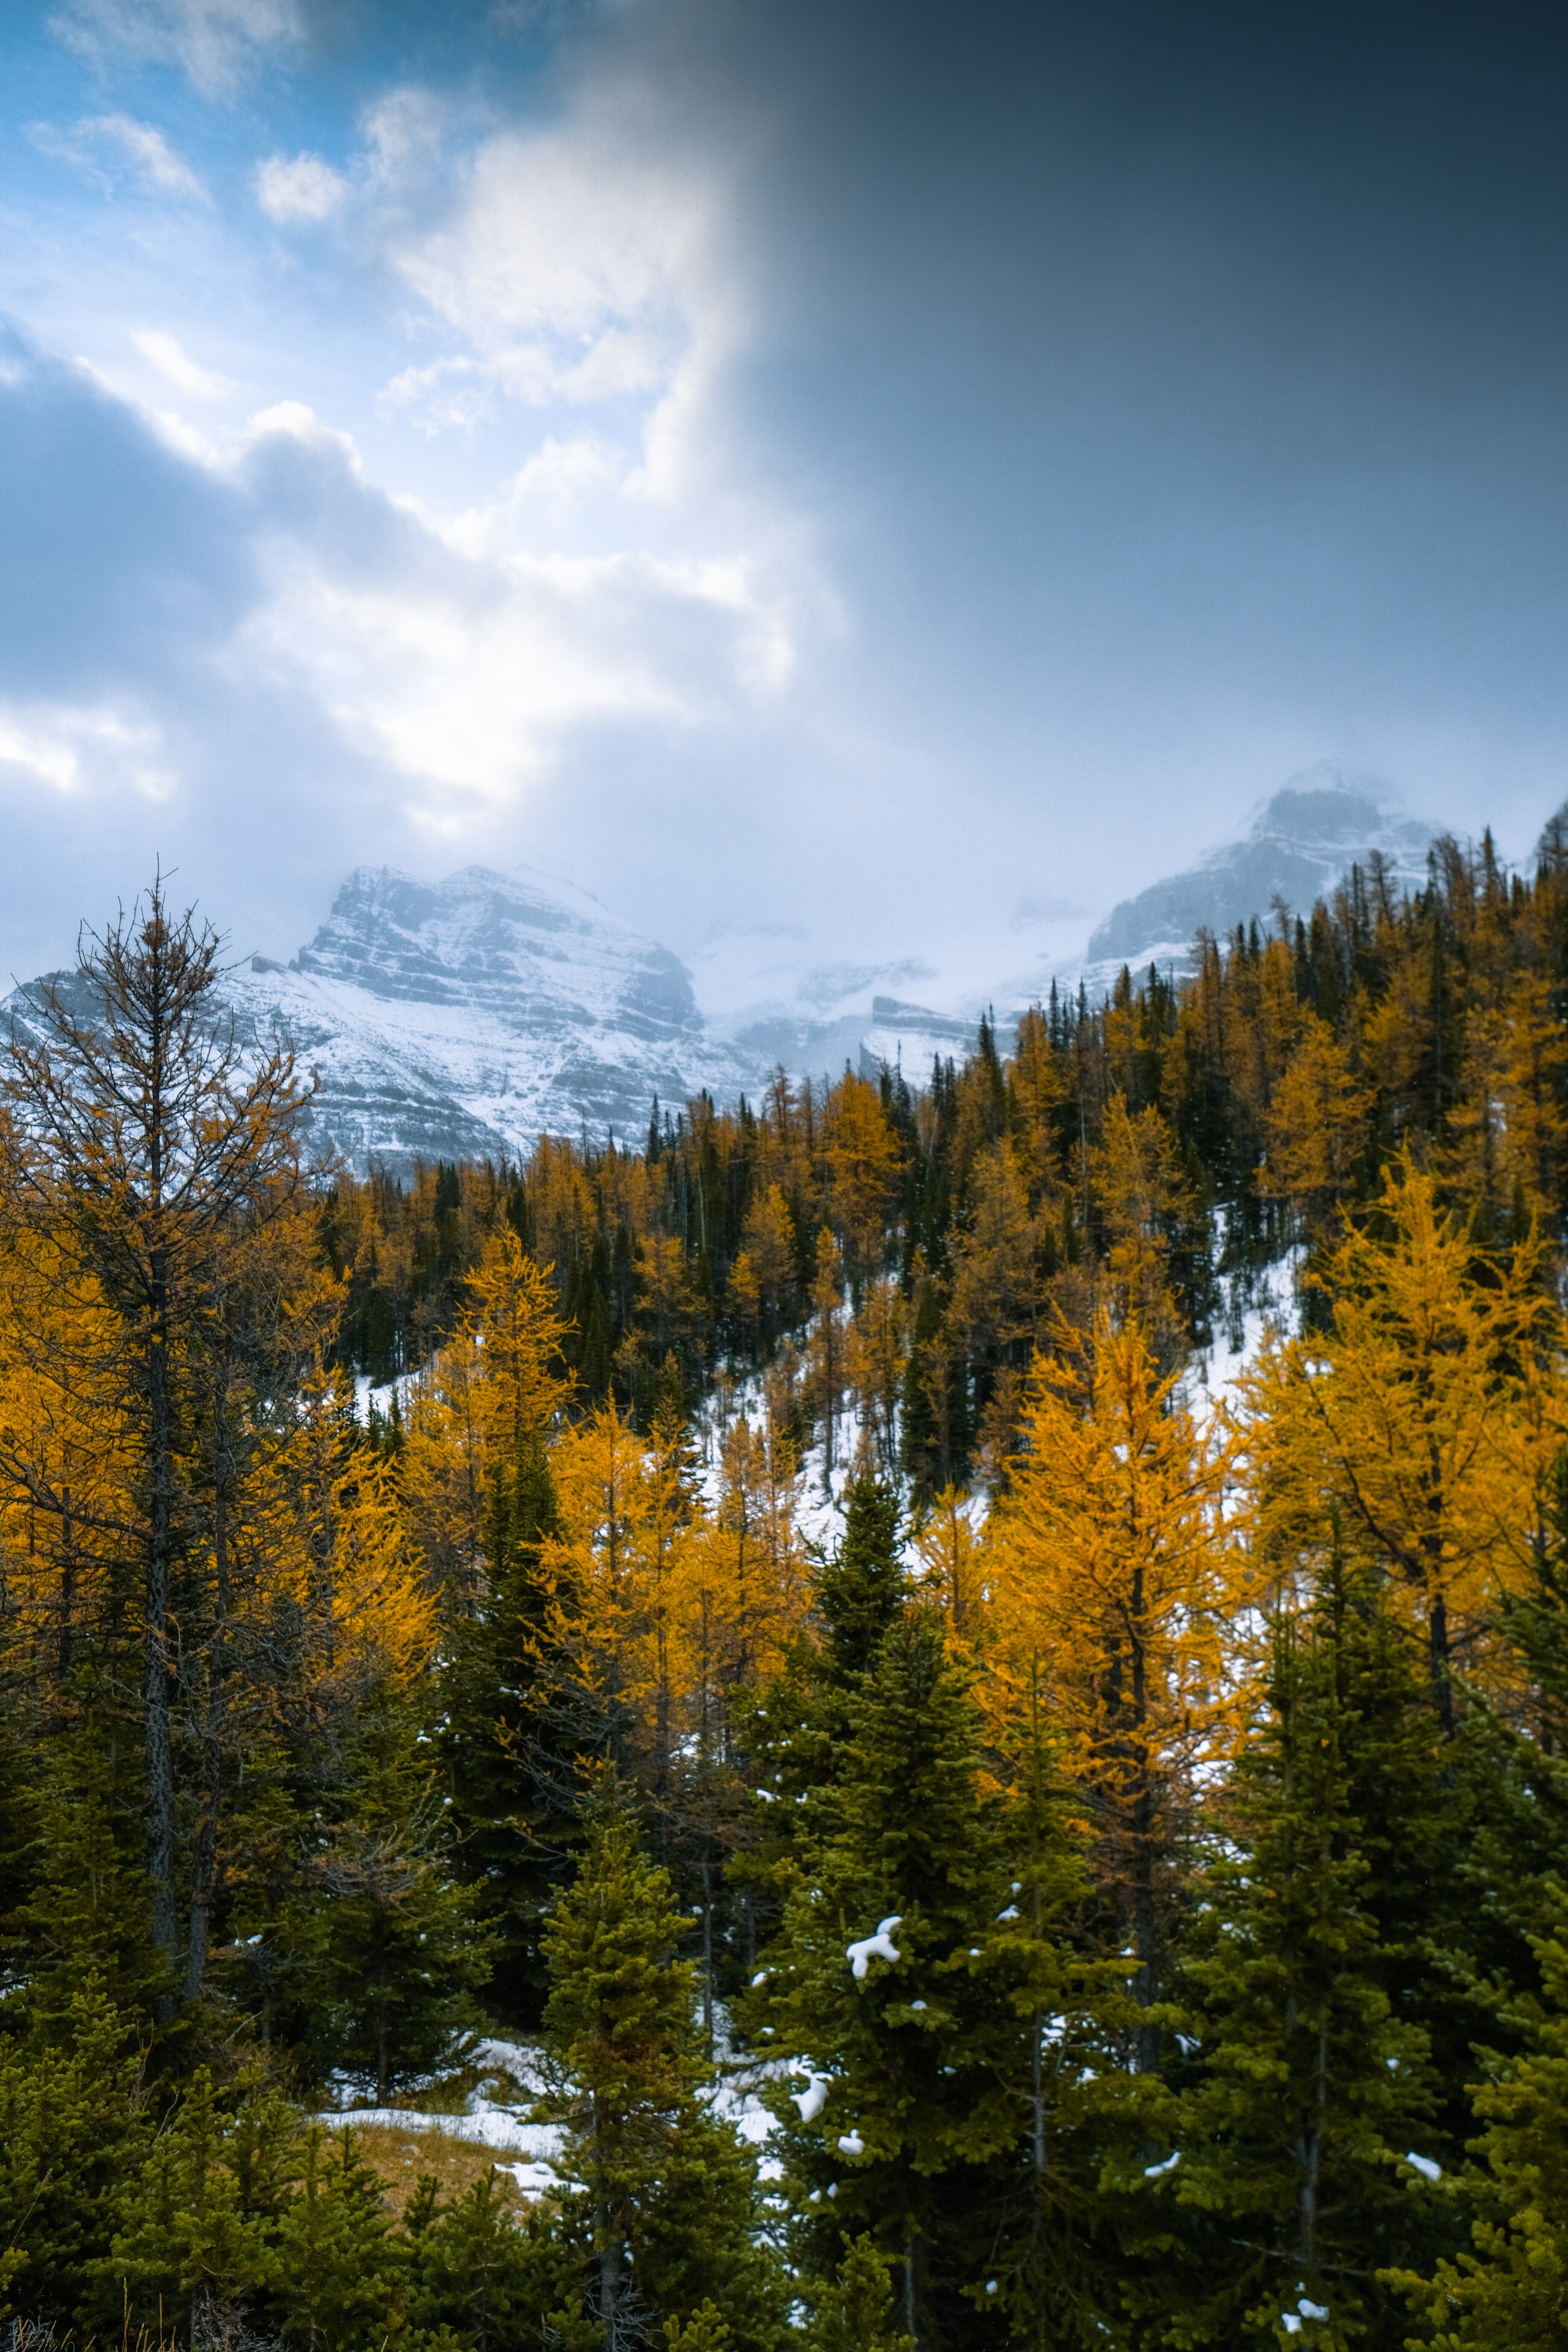 50804 download wallpaper Nature, Forest, Snow, Snow Covered, Snowbound, Mountains, Landscape screensavers and pictures for free